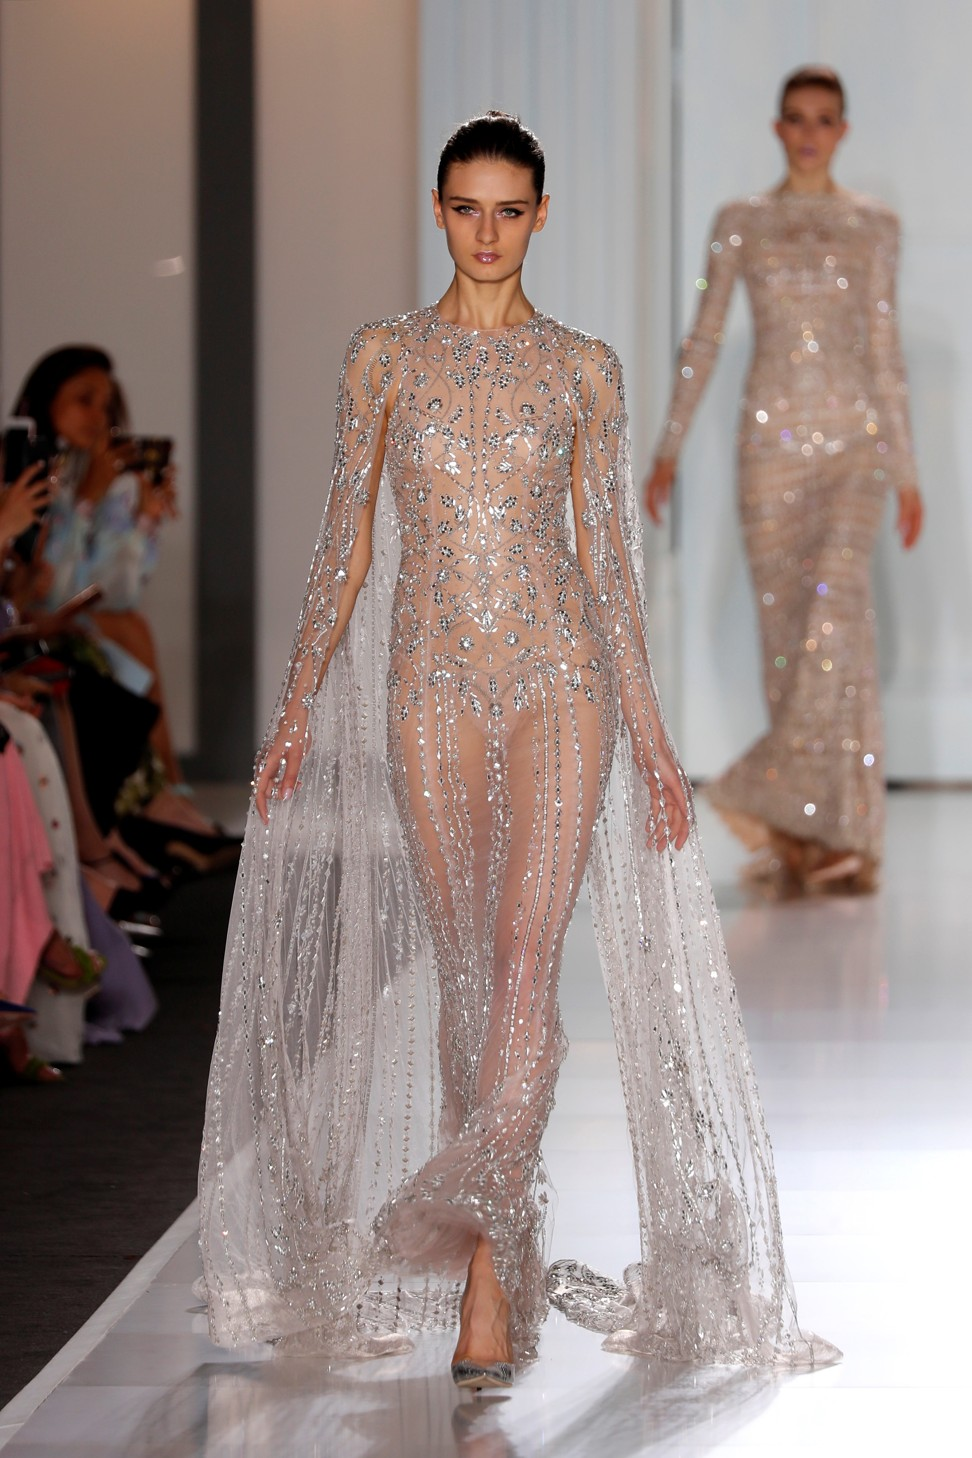 Ralph Amp Russo S Haute Couture Collection Adds A Theatrical